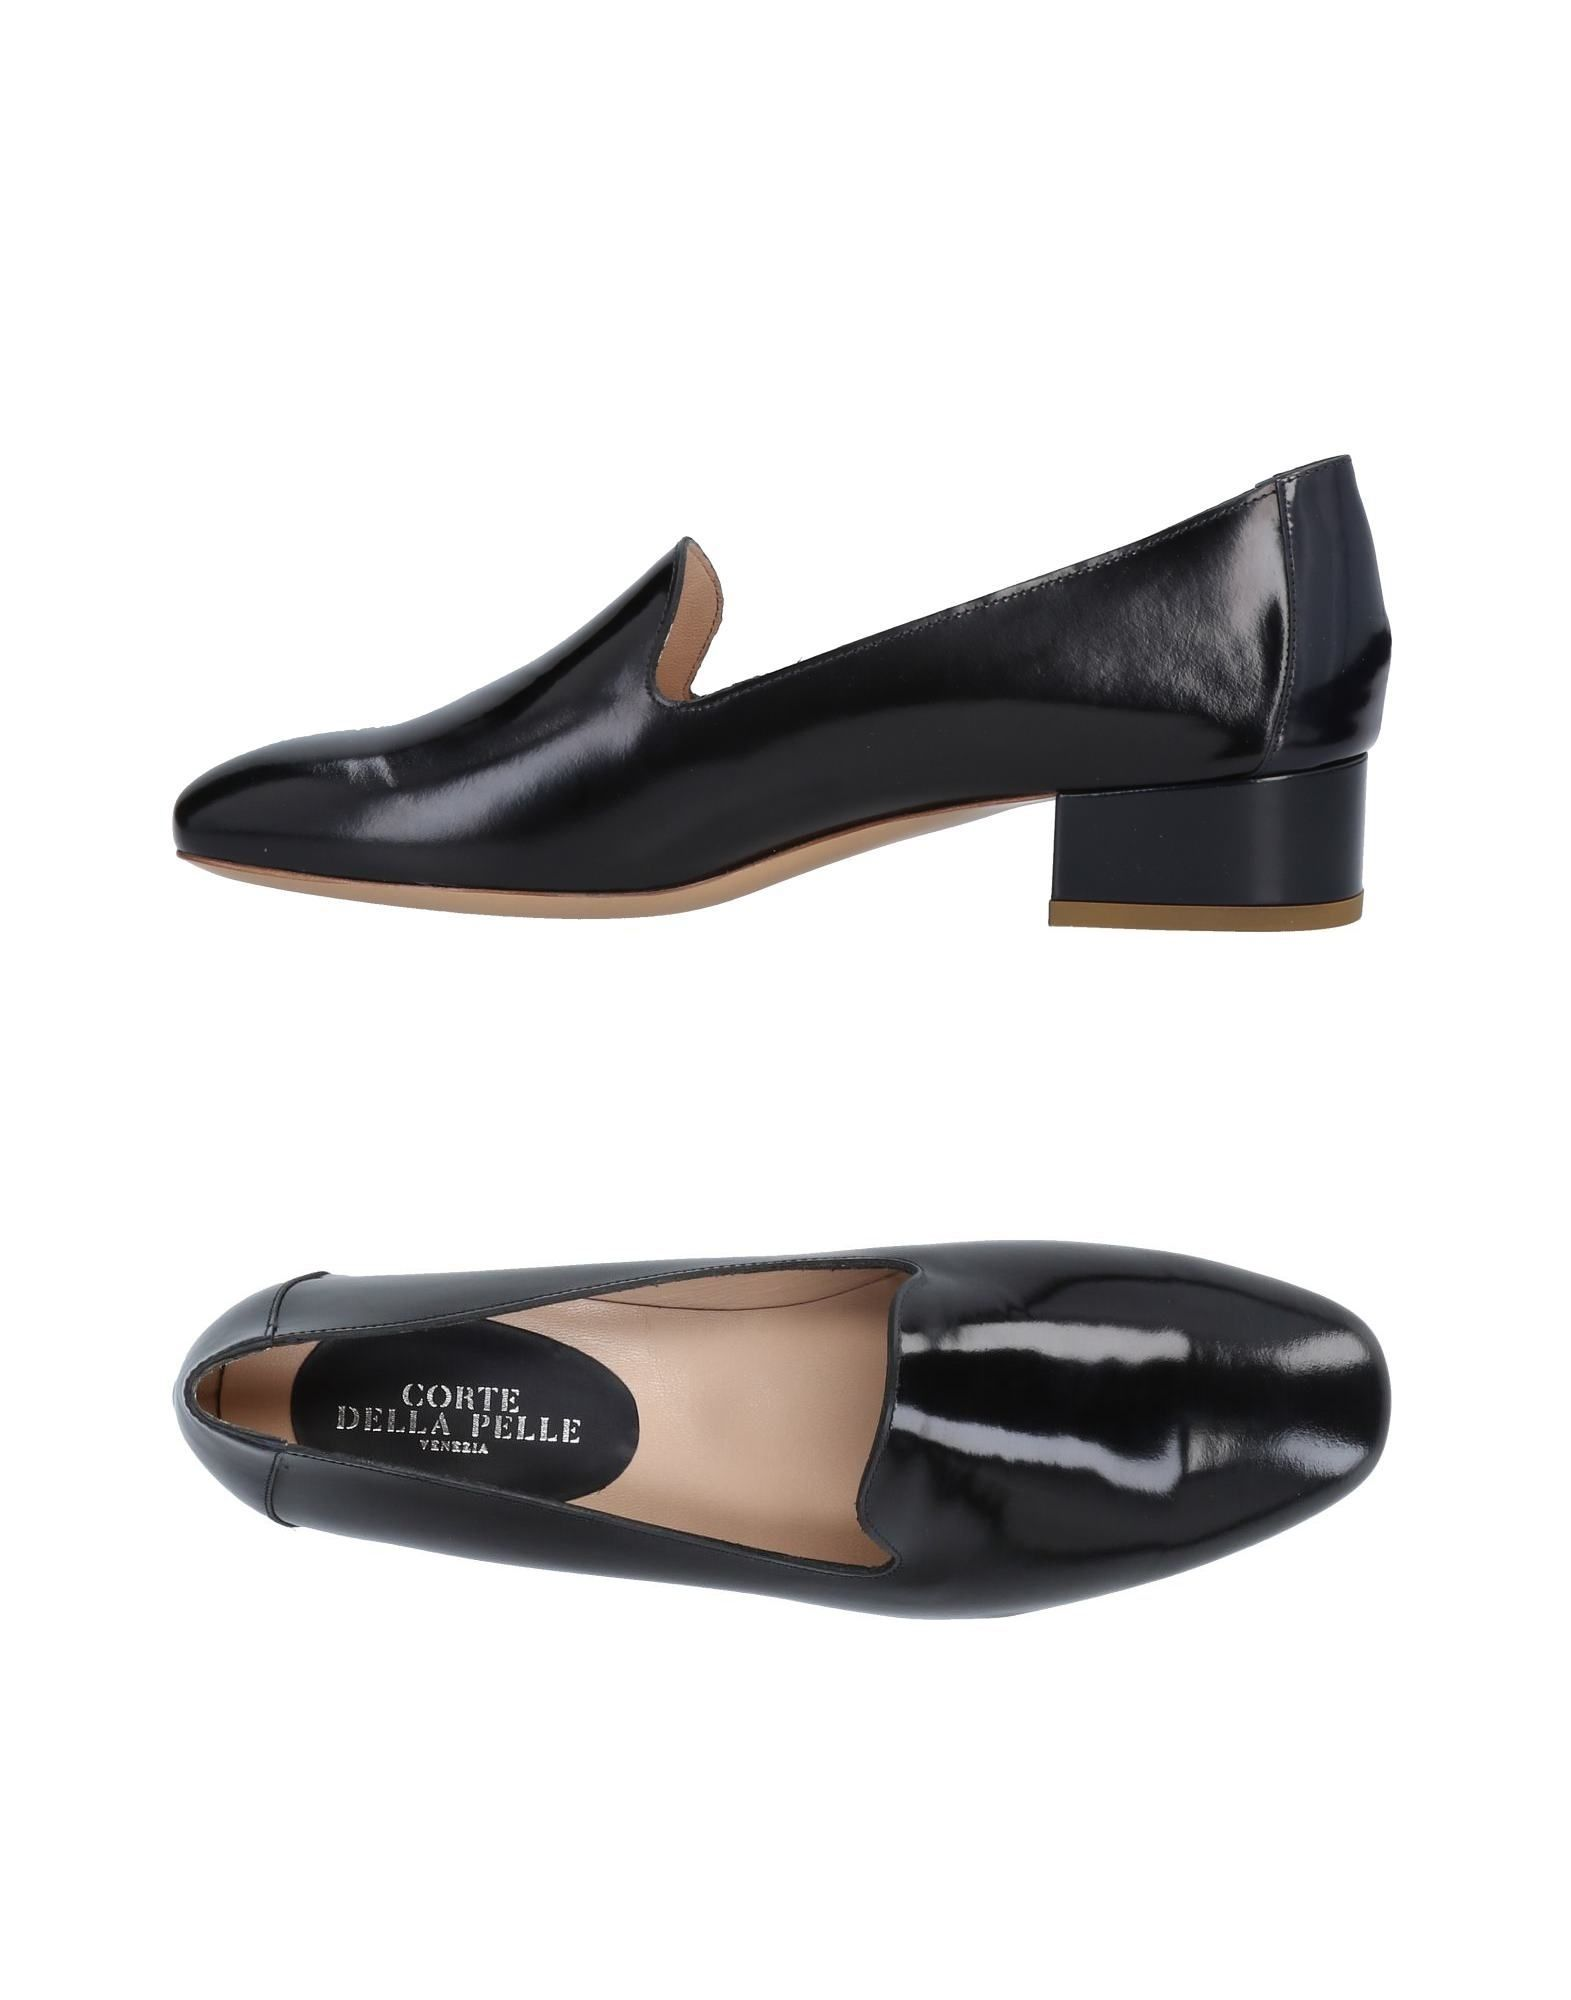 La Corte Ballin Della Pelle By Franco Ballin Corte Loafers - Women La Corte Della Pelle By Franco Ballin Loafers online on  Australia - 11474883UP c97764